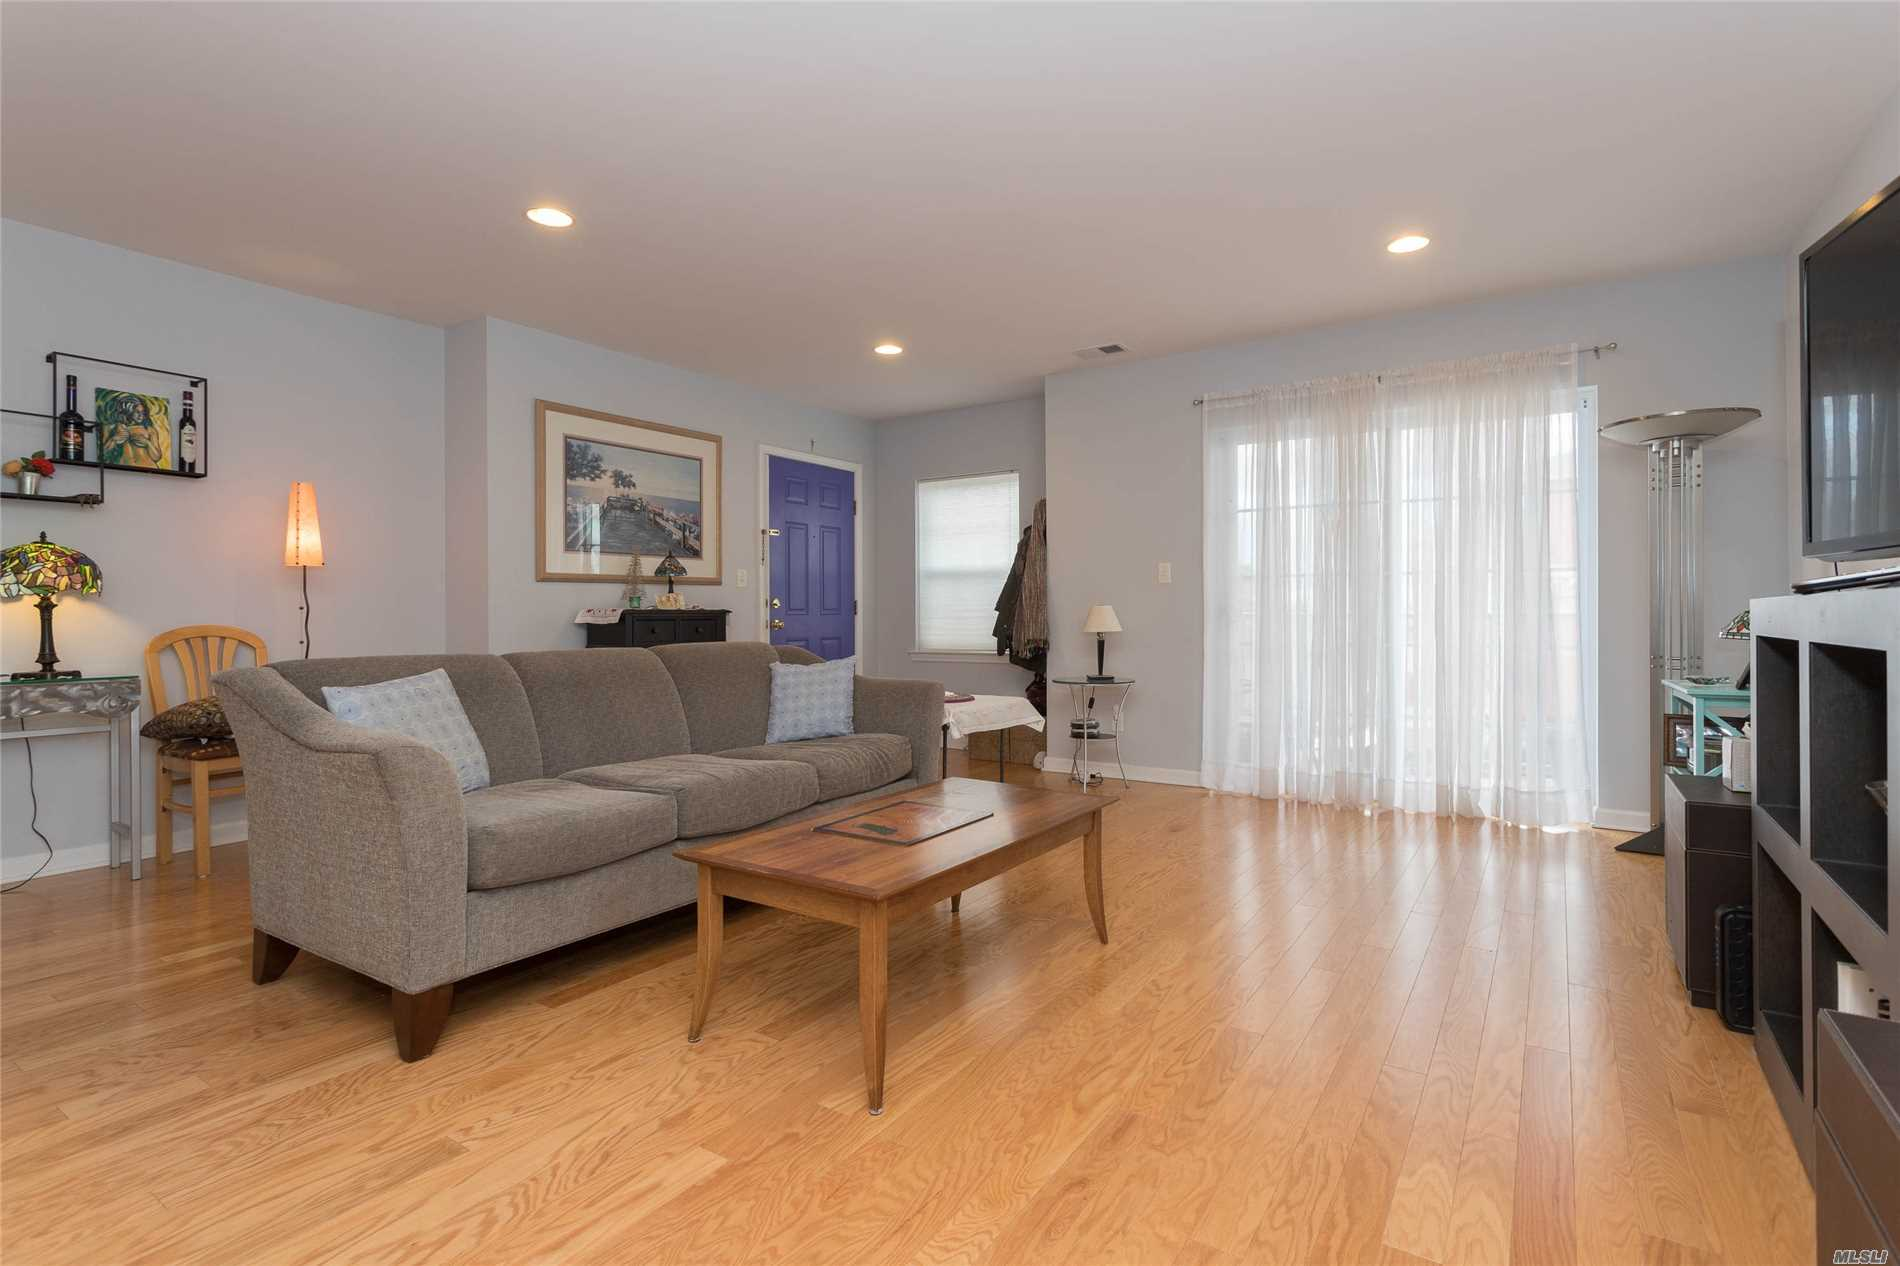 Beautiful 2 Bedroom Condo. Approx. 1166 Sqft. 2 Bath & Terrace. Views Of River, Promenade, Waterfront Park & The Whitestone Bridge. Energy Star Rated. Hdwd Flrs., Kit W/ Granite Counter Tops, Cac. Quiet Neighborhood. Access To 6 Acre Waterfront Park. Pvt Setting, Landscaped Grounds & N/Hood Video Surveillance System. Parking Space Incl. 421 A Tax Abatement Discount Reduces Taxes To $643 Annually. Near Schools, Transportation & Macneil Park.